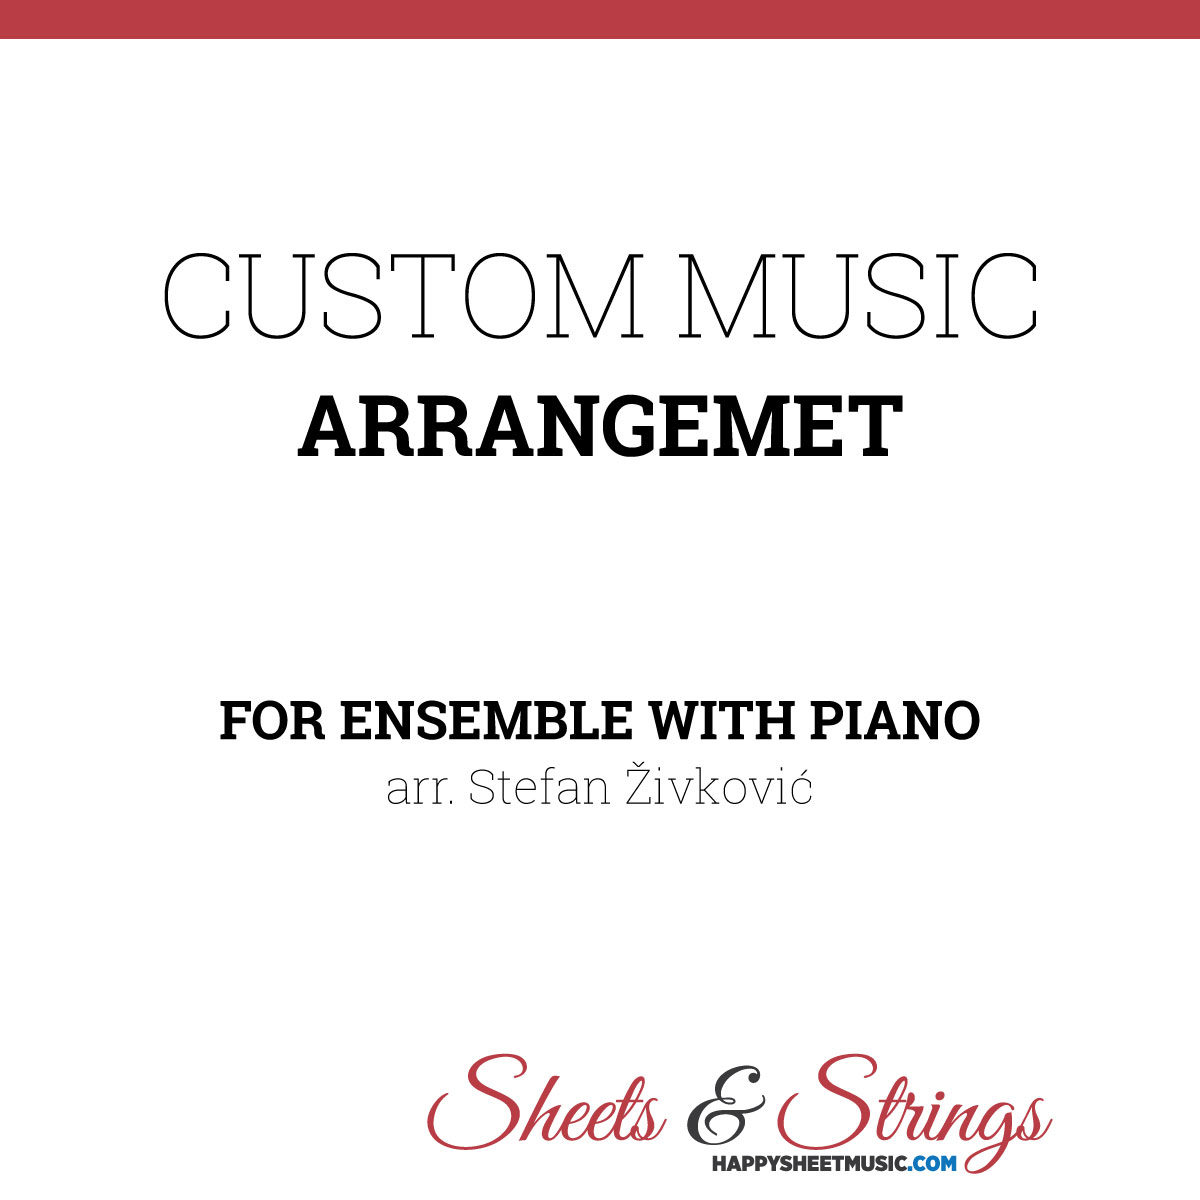 Custom Music Arrangement for Ensemble with Piano